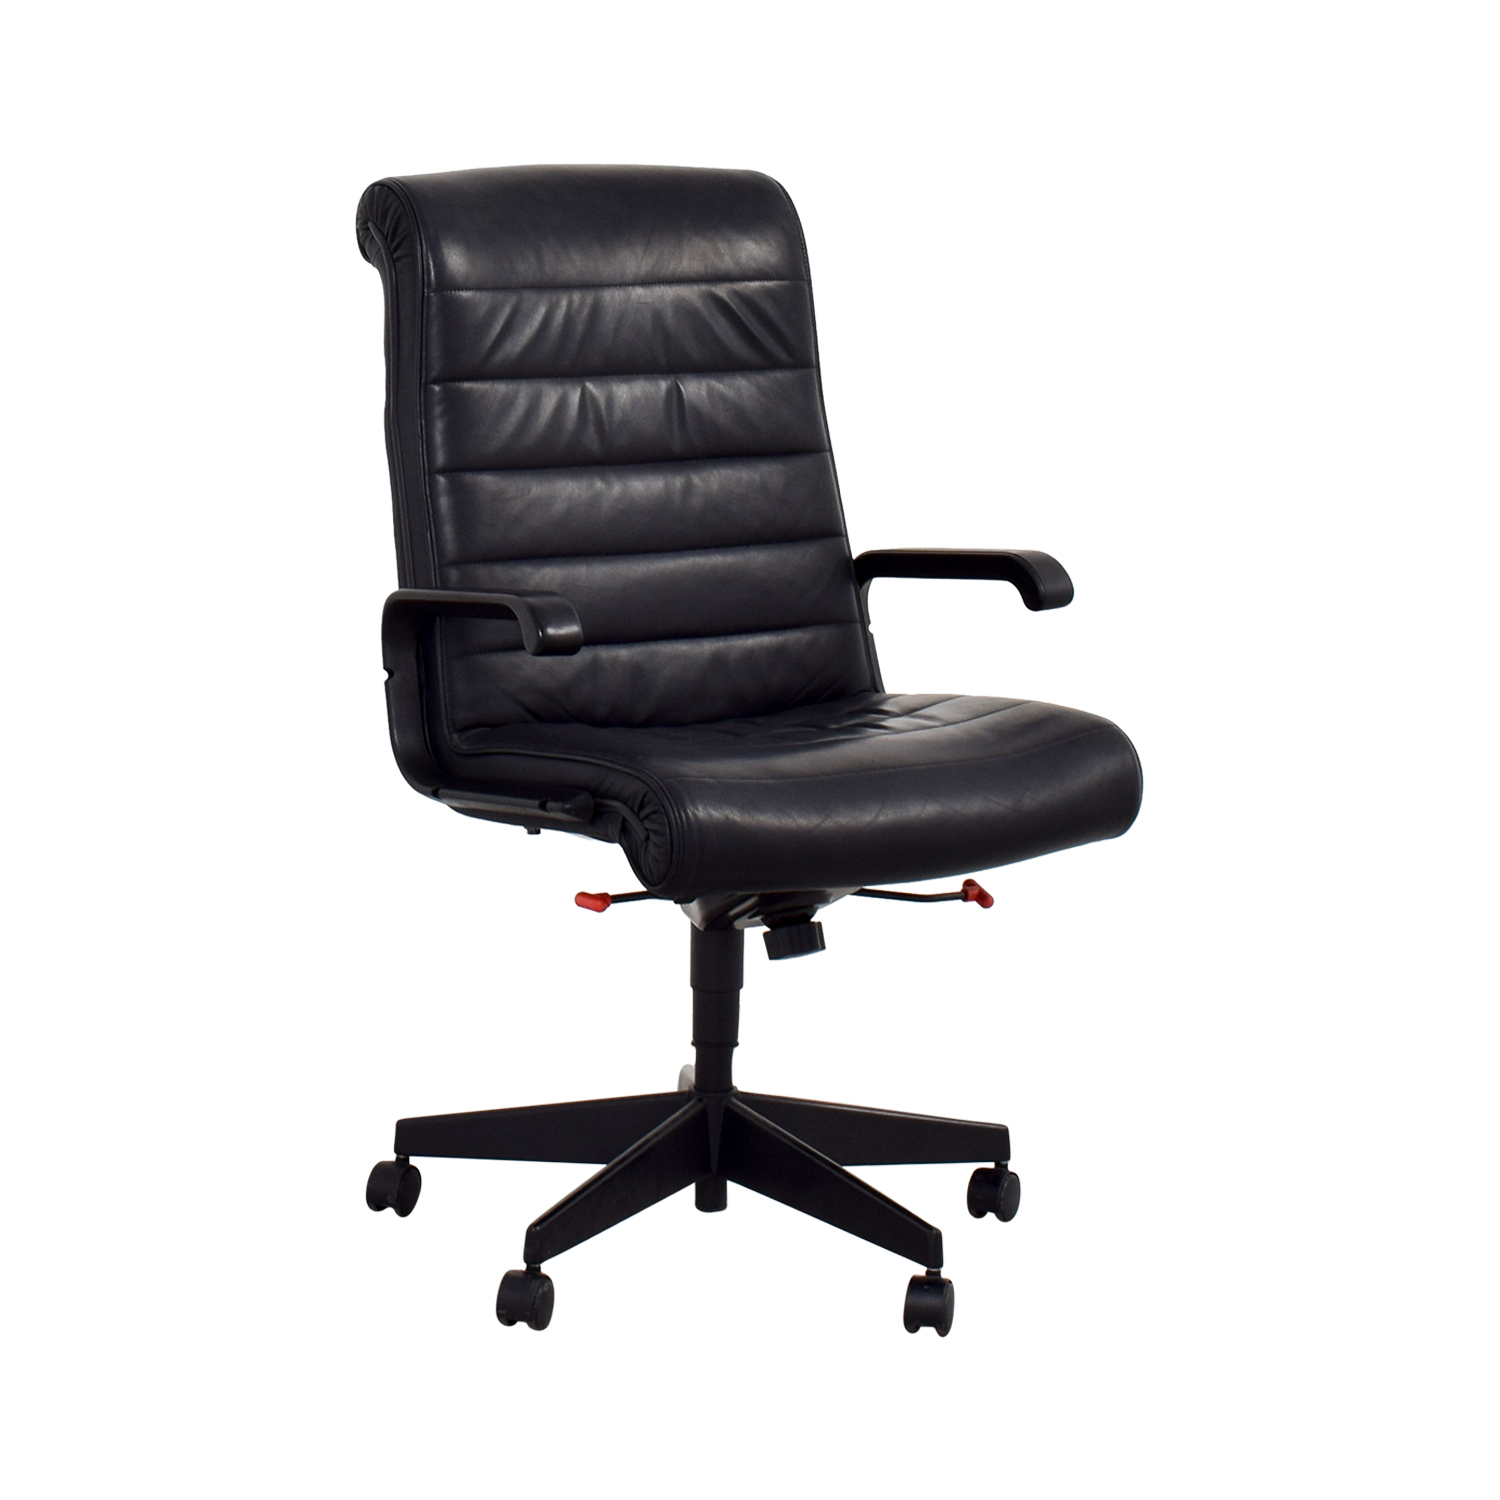 wholesale office chairs 90 black leather office chair chairs 29262